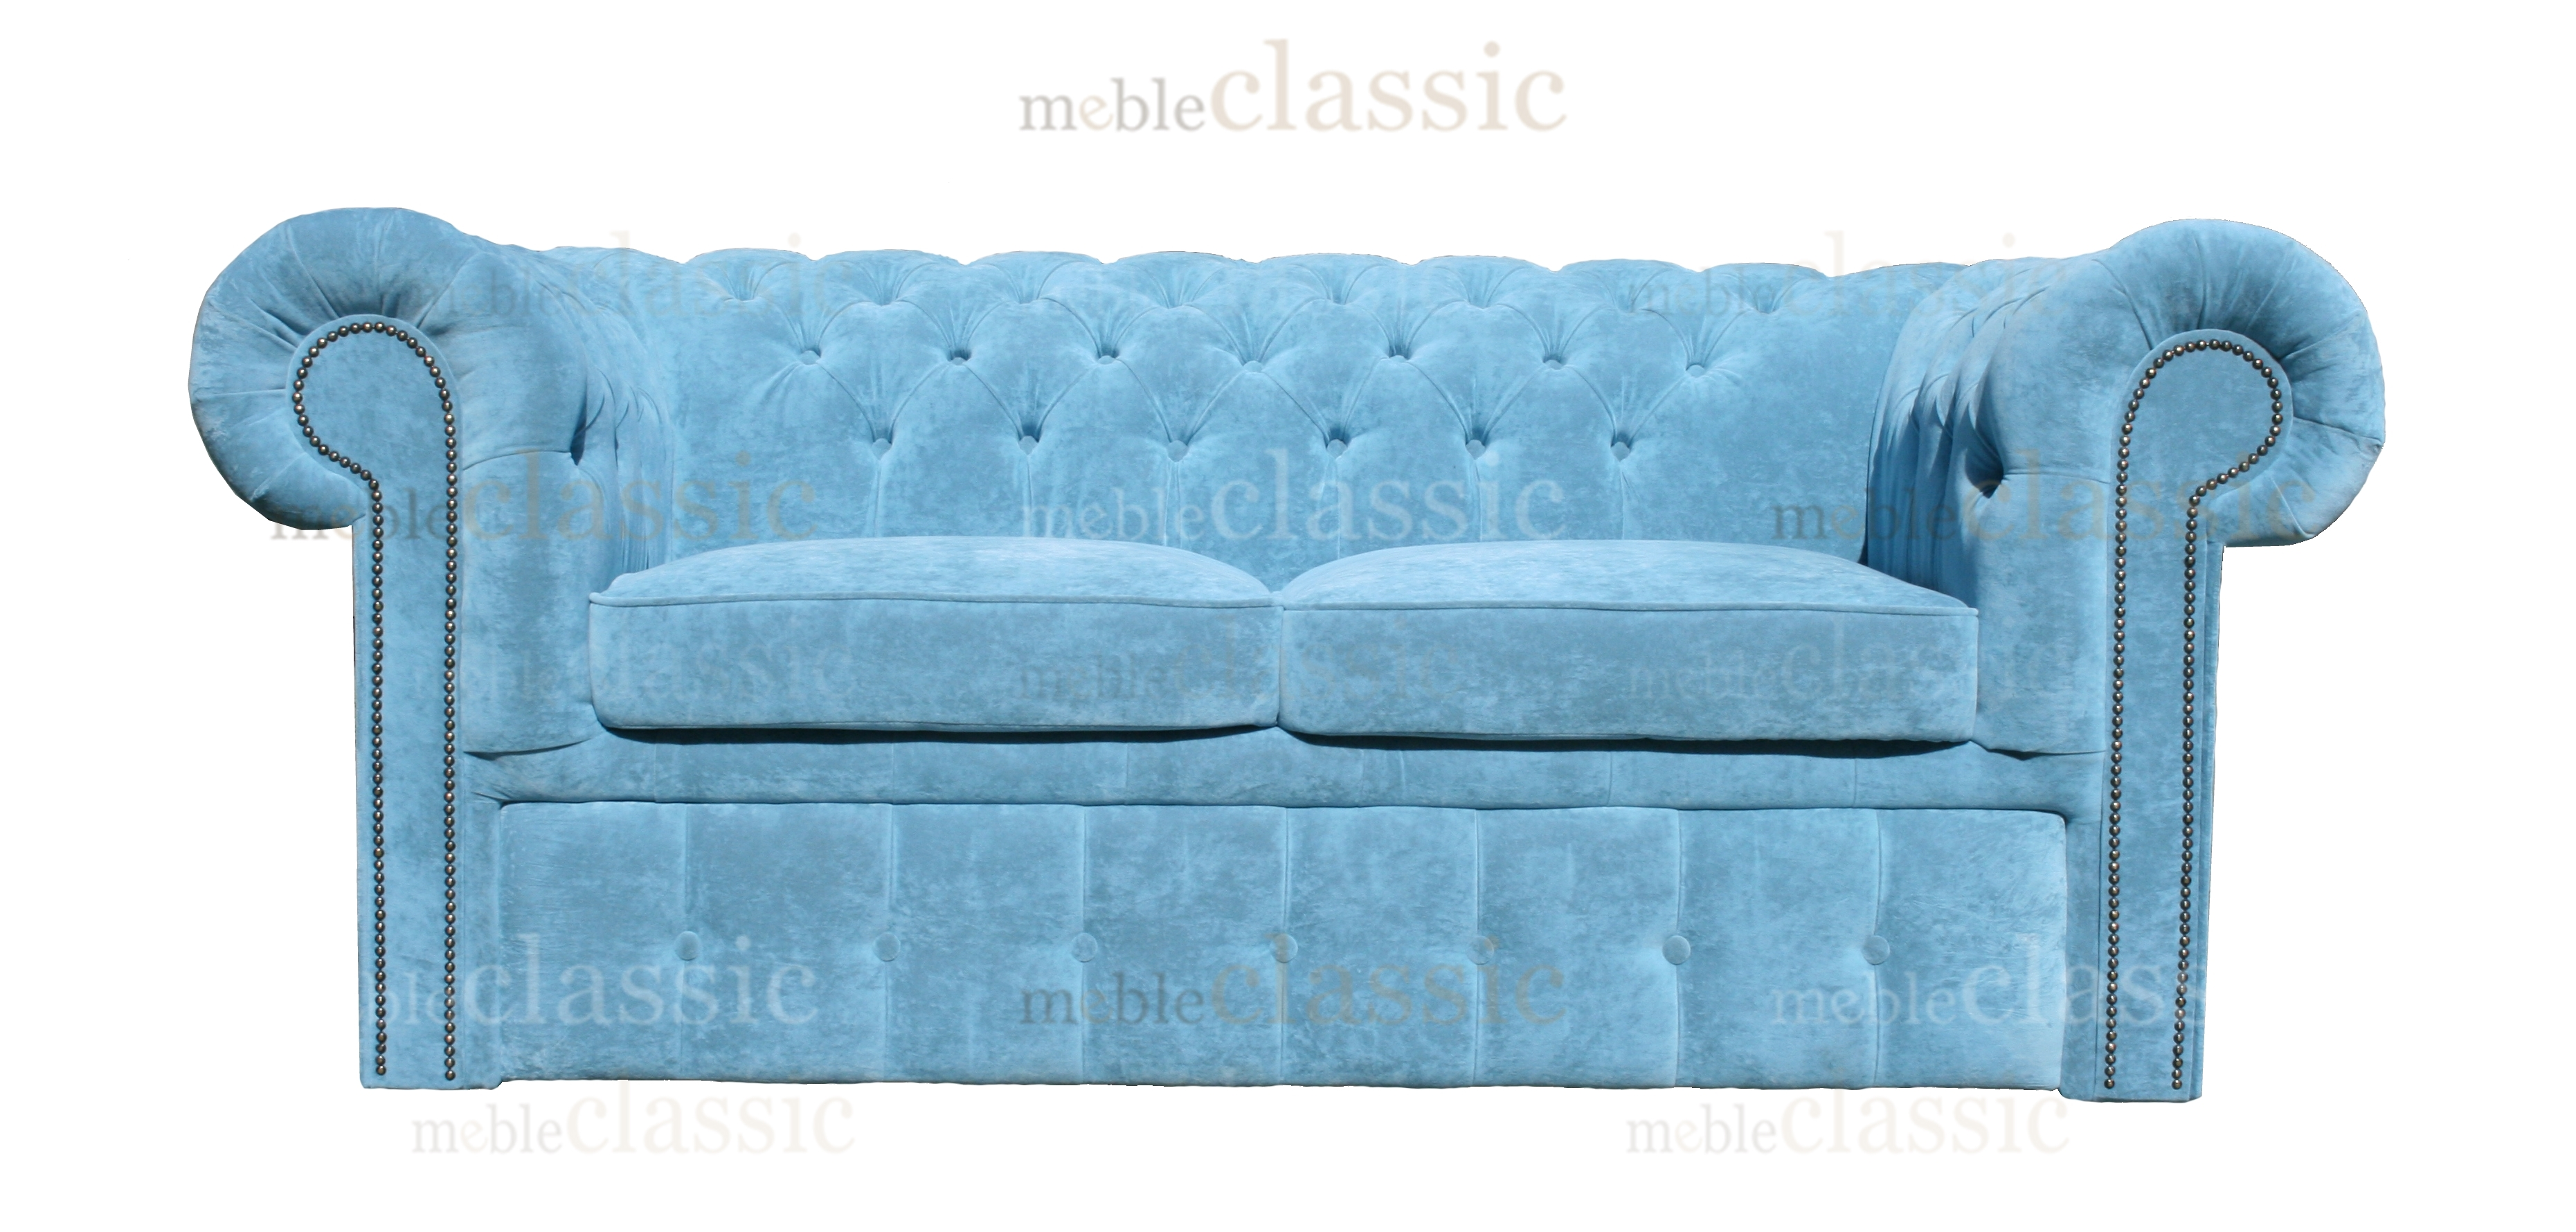 Flufyy Sofa Chesterfield Netherlands, Great Britain, Poland, German